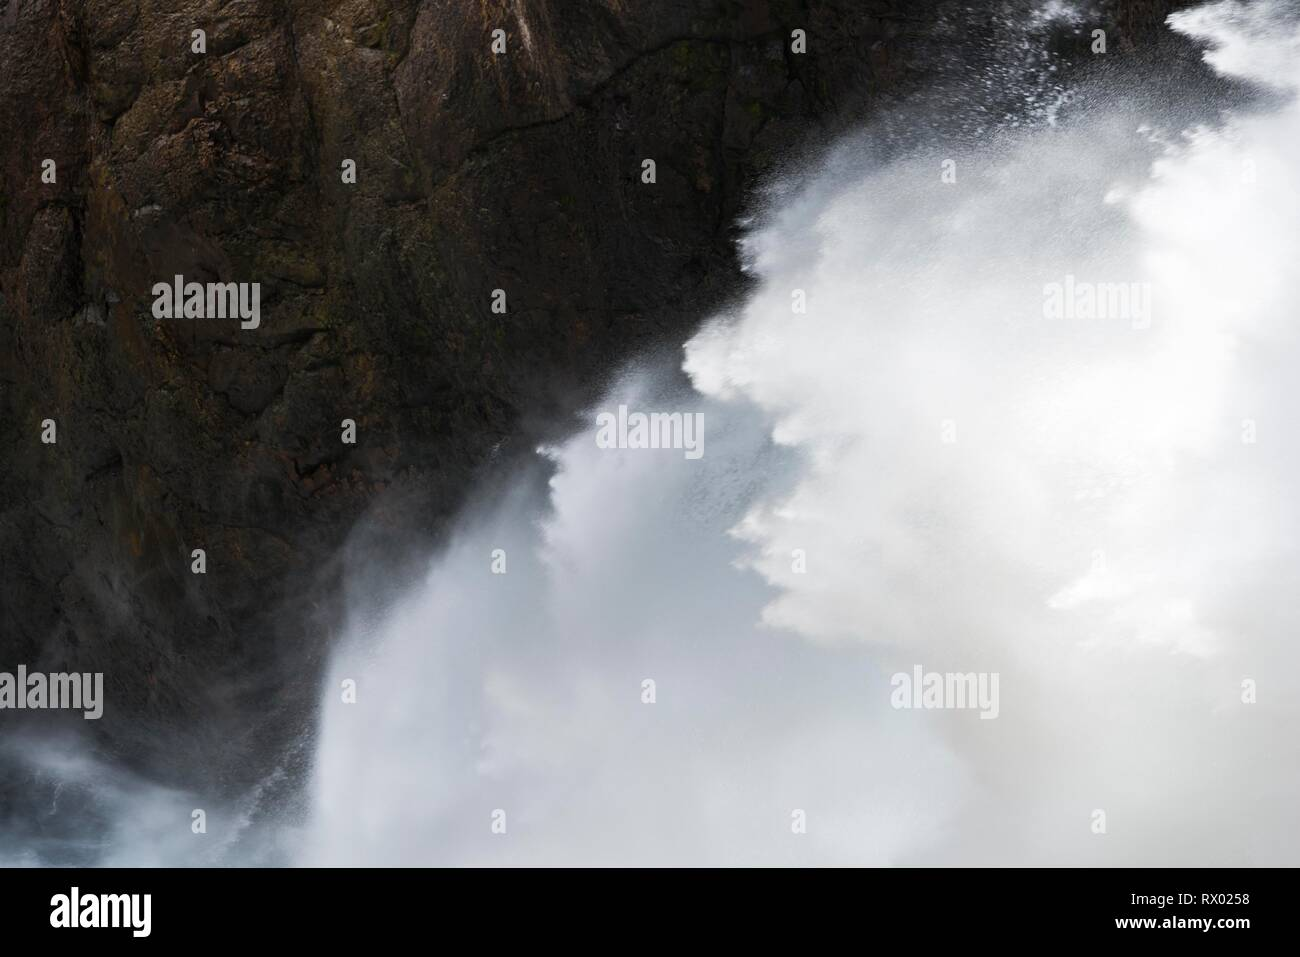 Detailed view, falling water, Lower Yellowstone Falls, waterfall in a gorge, Grand Canyon of the Yellowstone River - Stock Image